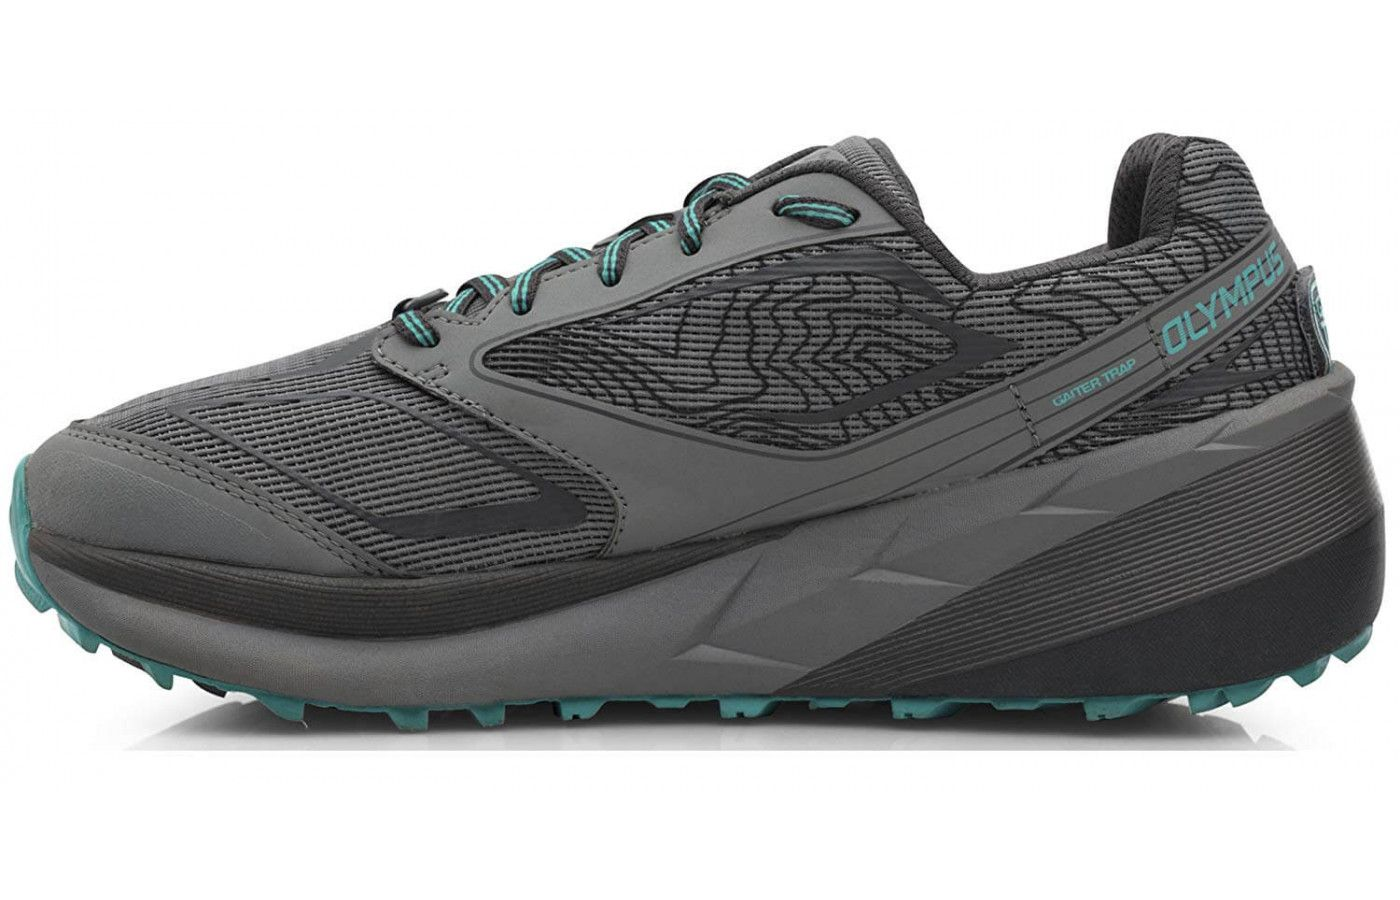 Altra Olympus 3.0 (With images) Running shoes, Running